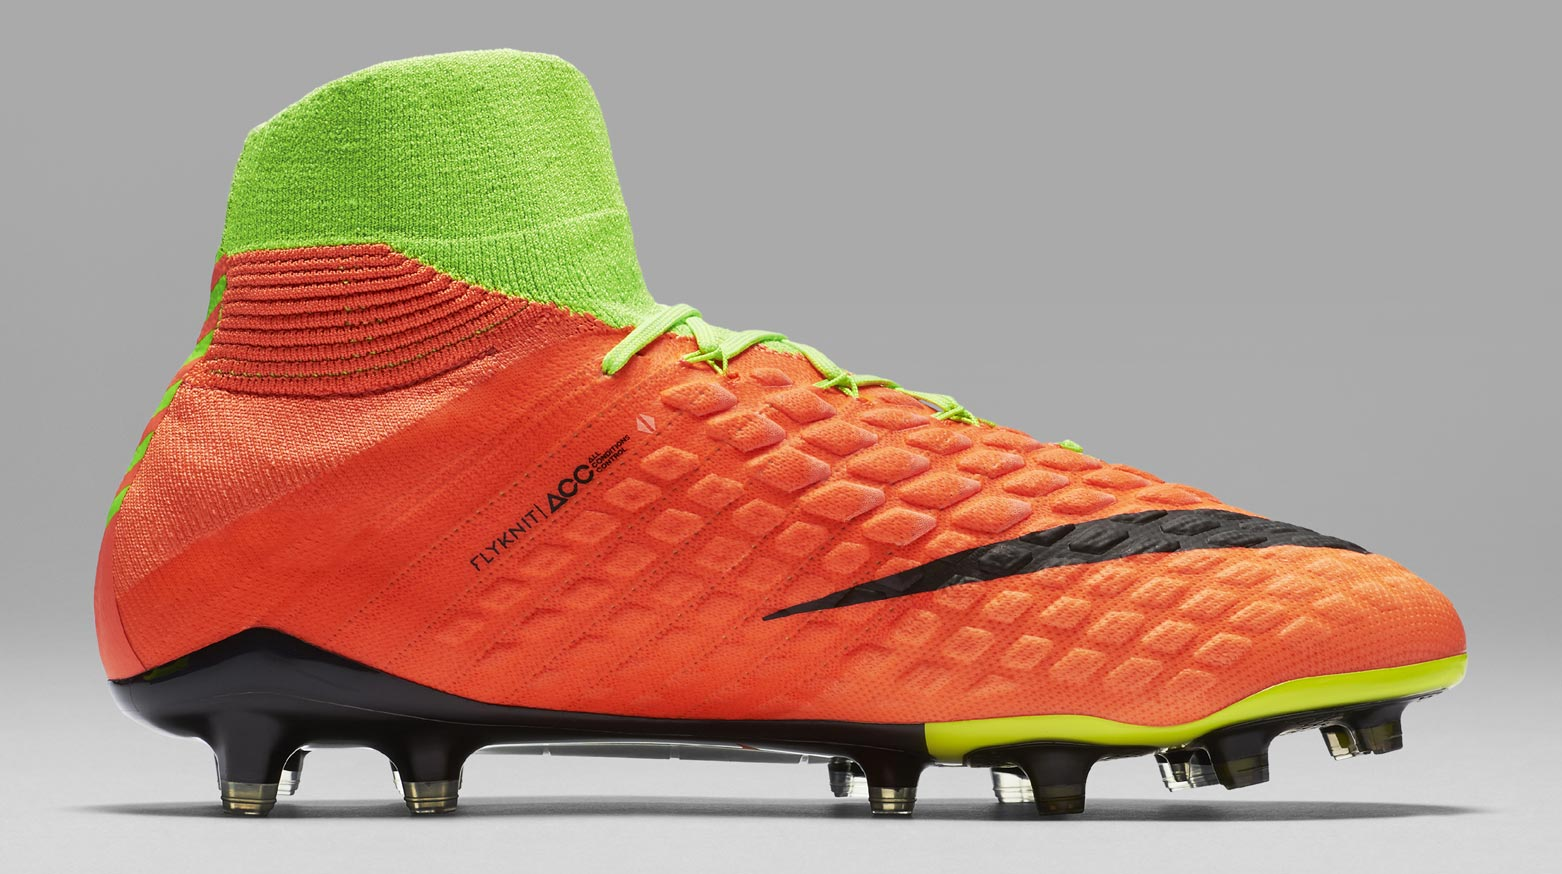 During the BPL Season 2018/2019 the Right footed player of Arsenal, born in Waltham Forest, England, plays on Nike Hypervenom Phantom III DF.